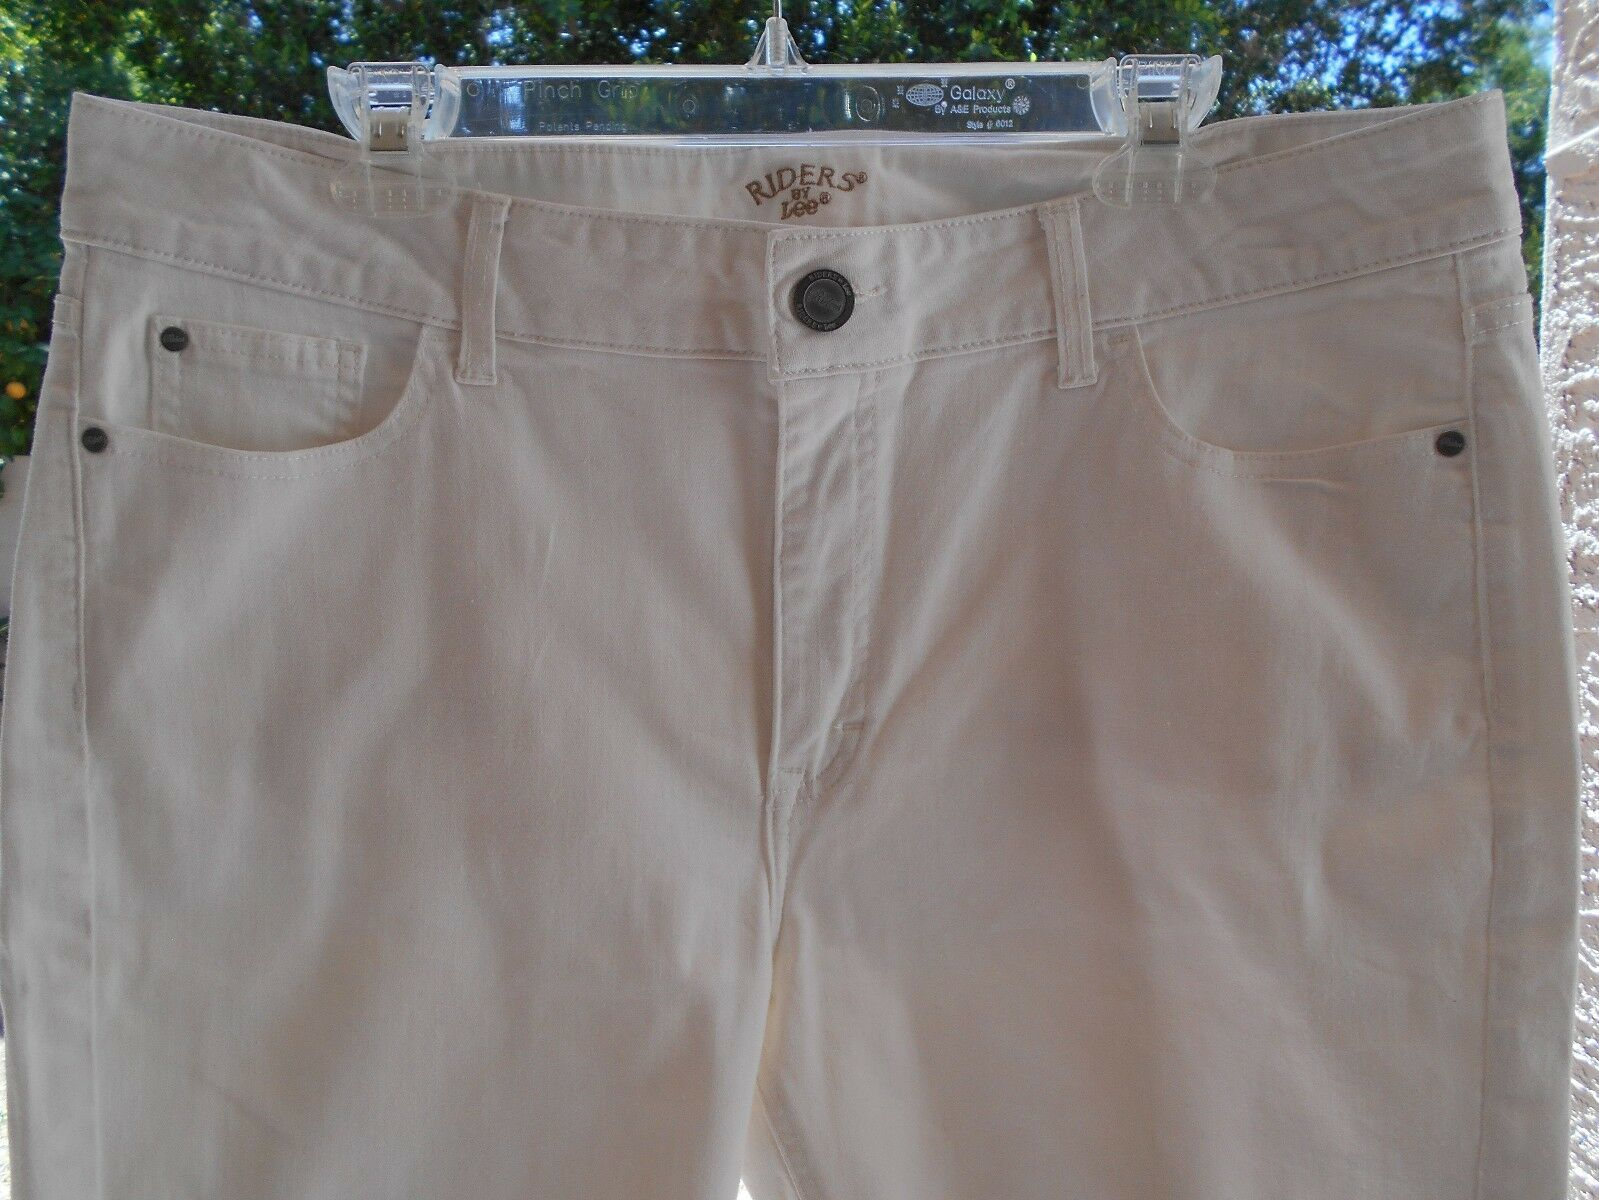 "Primary image for Riders by Lee Women's Stretch Jean Bermuda SHORTS 14 WAIST 37"" WHITE SEQUIN"